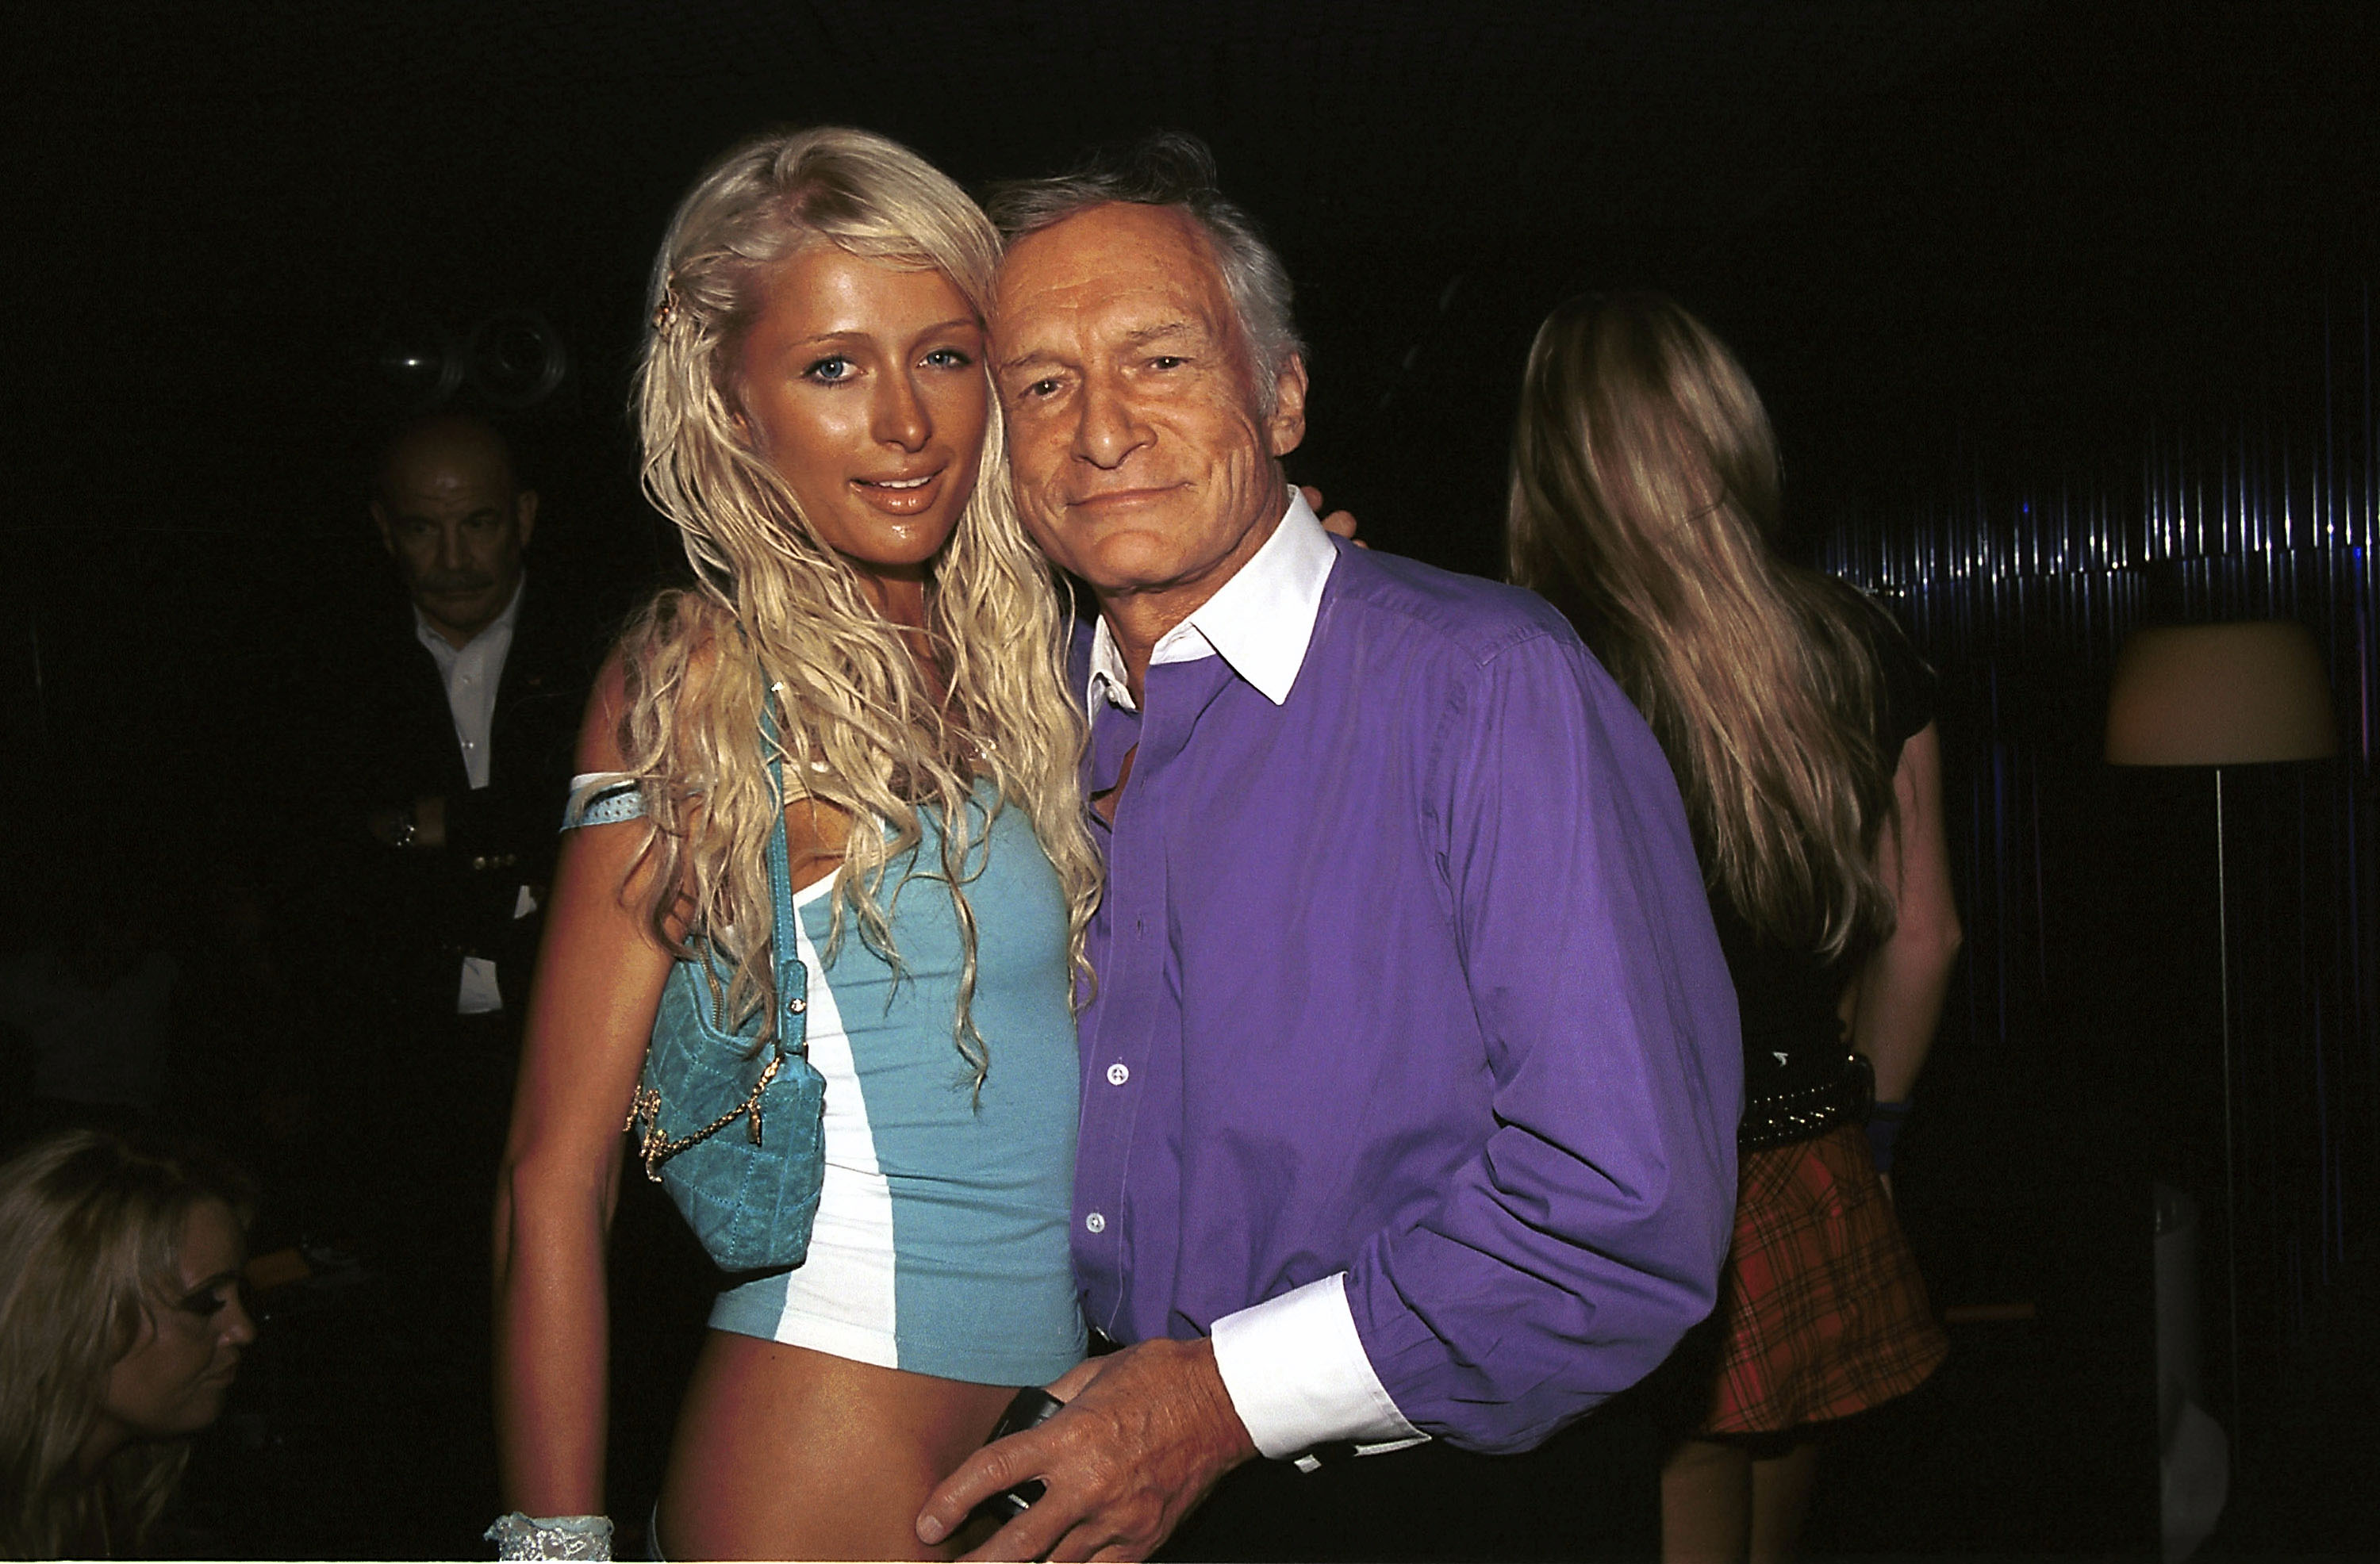 This Oscar Winner Will Portray Hugh Hefner in a Biopic